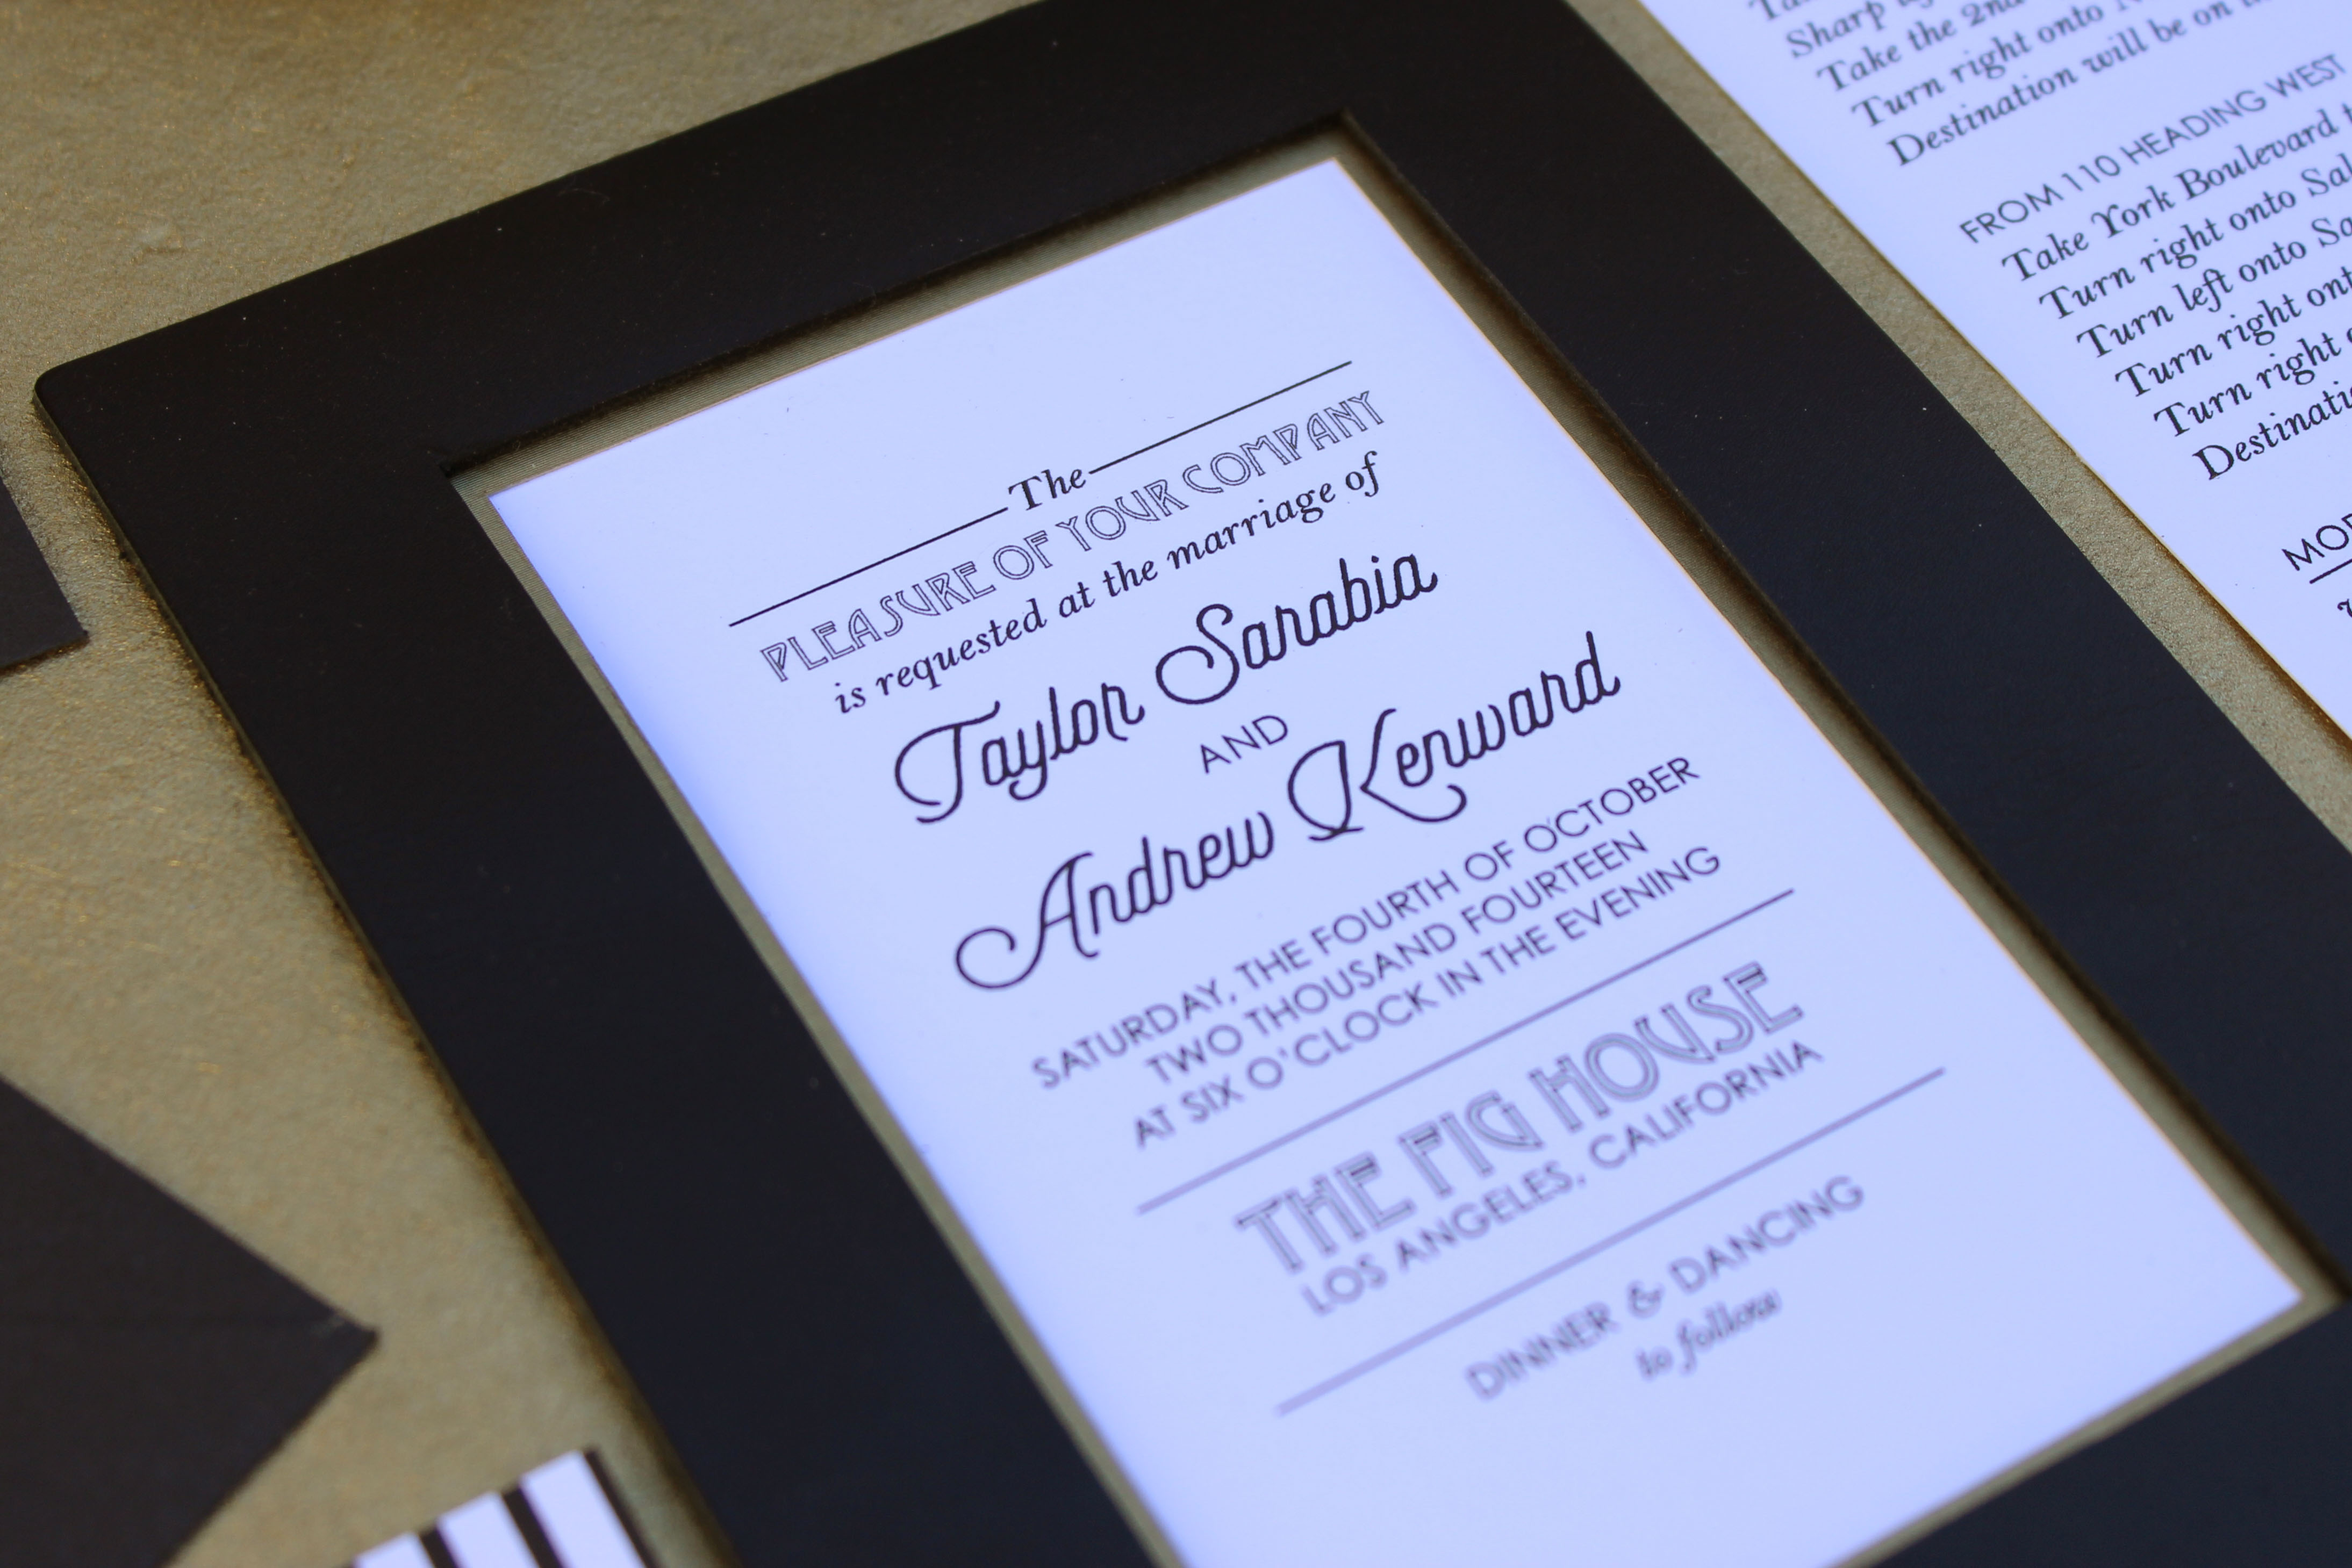 Qa wedding invitation wording tips from zenadia design inside zenadia design wedding invitation wording filmwisefo